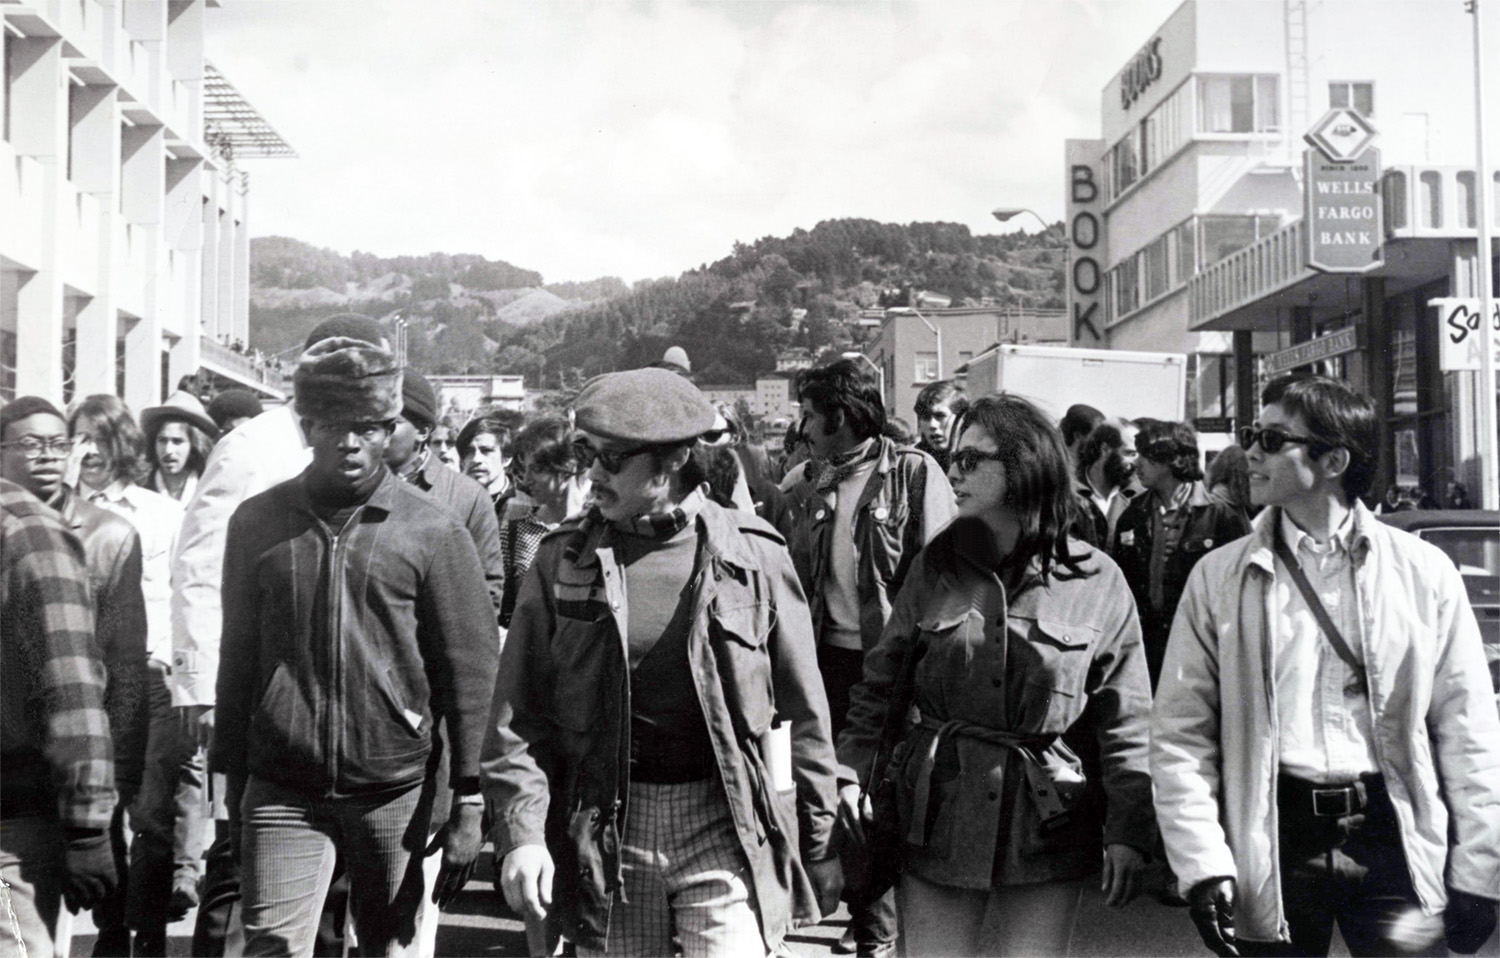 Students activists from four University of California, Berkeley ethnic student groups protesting on a street.